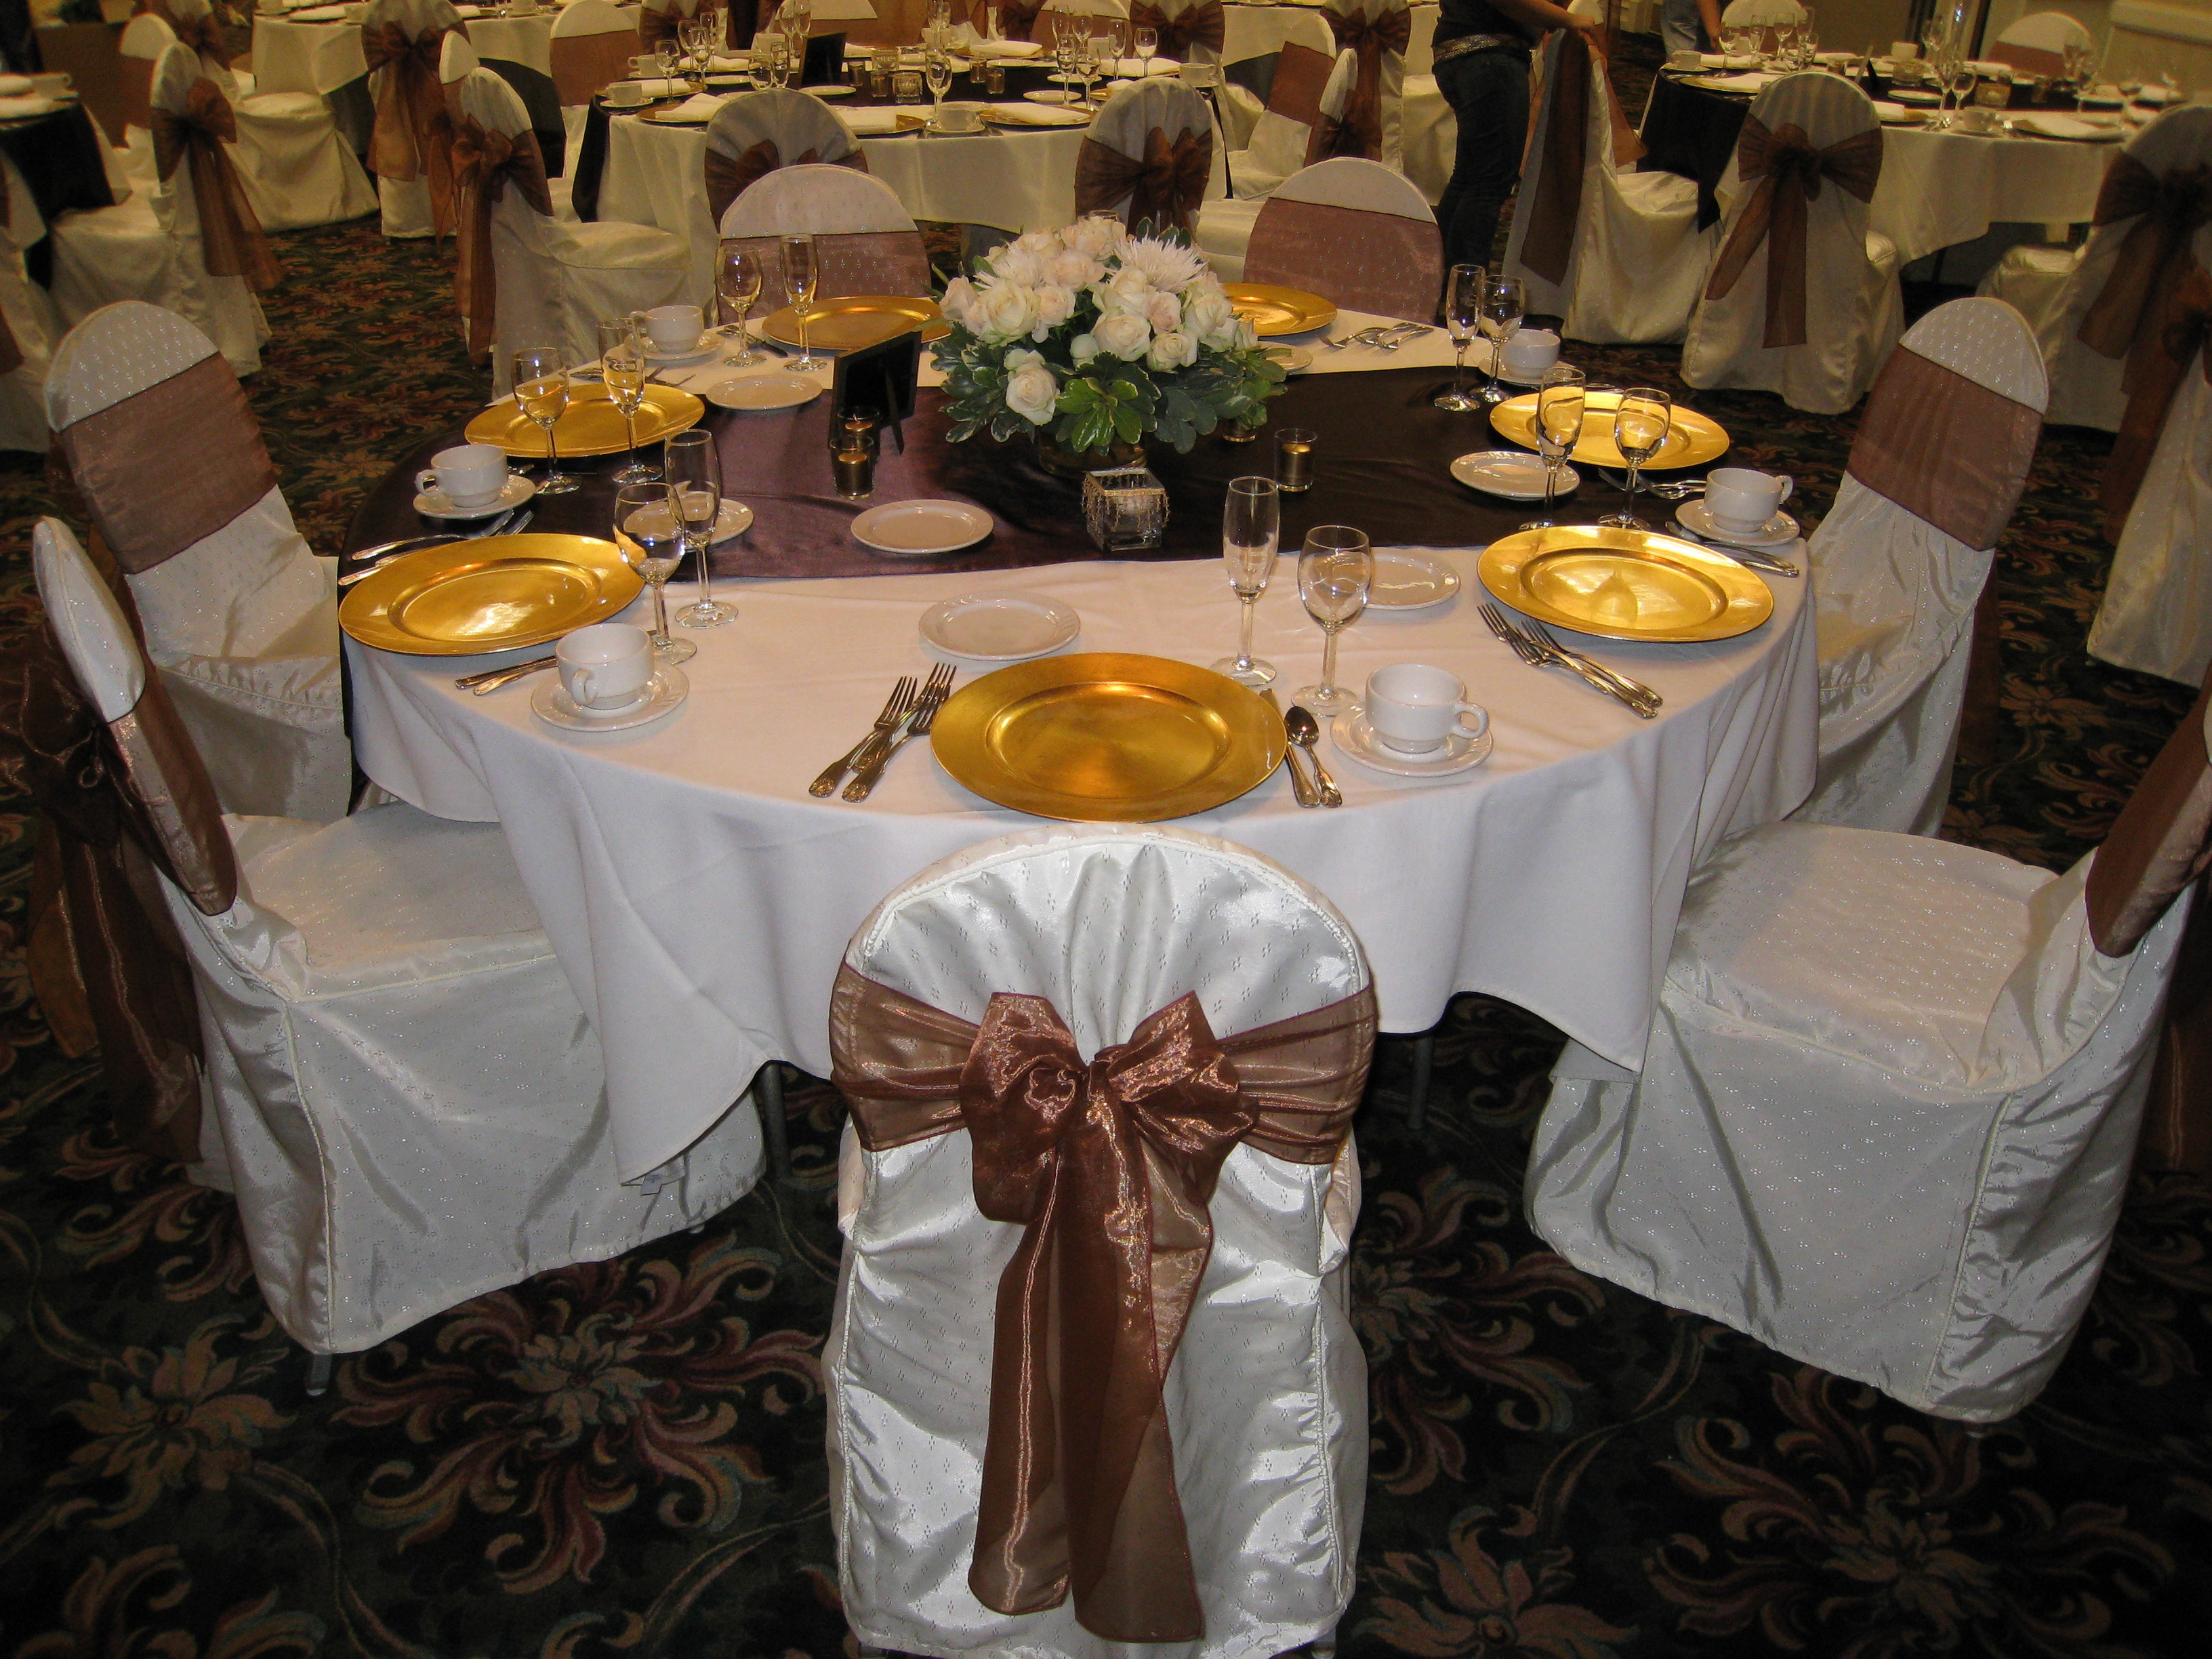 Decor, Chair, Sashes, Covers, Linens, Rentals, Chair covers sashes by party pros, Chair cover, Flowers & Decor